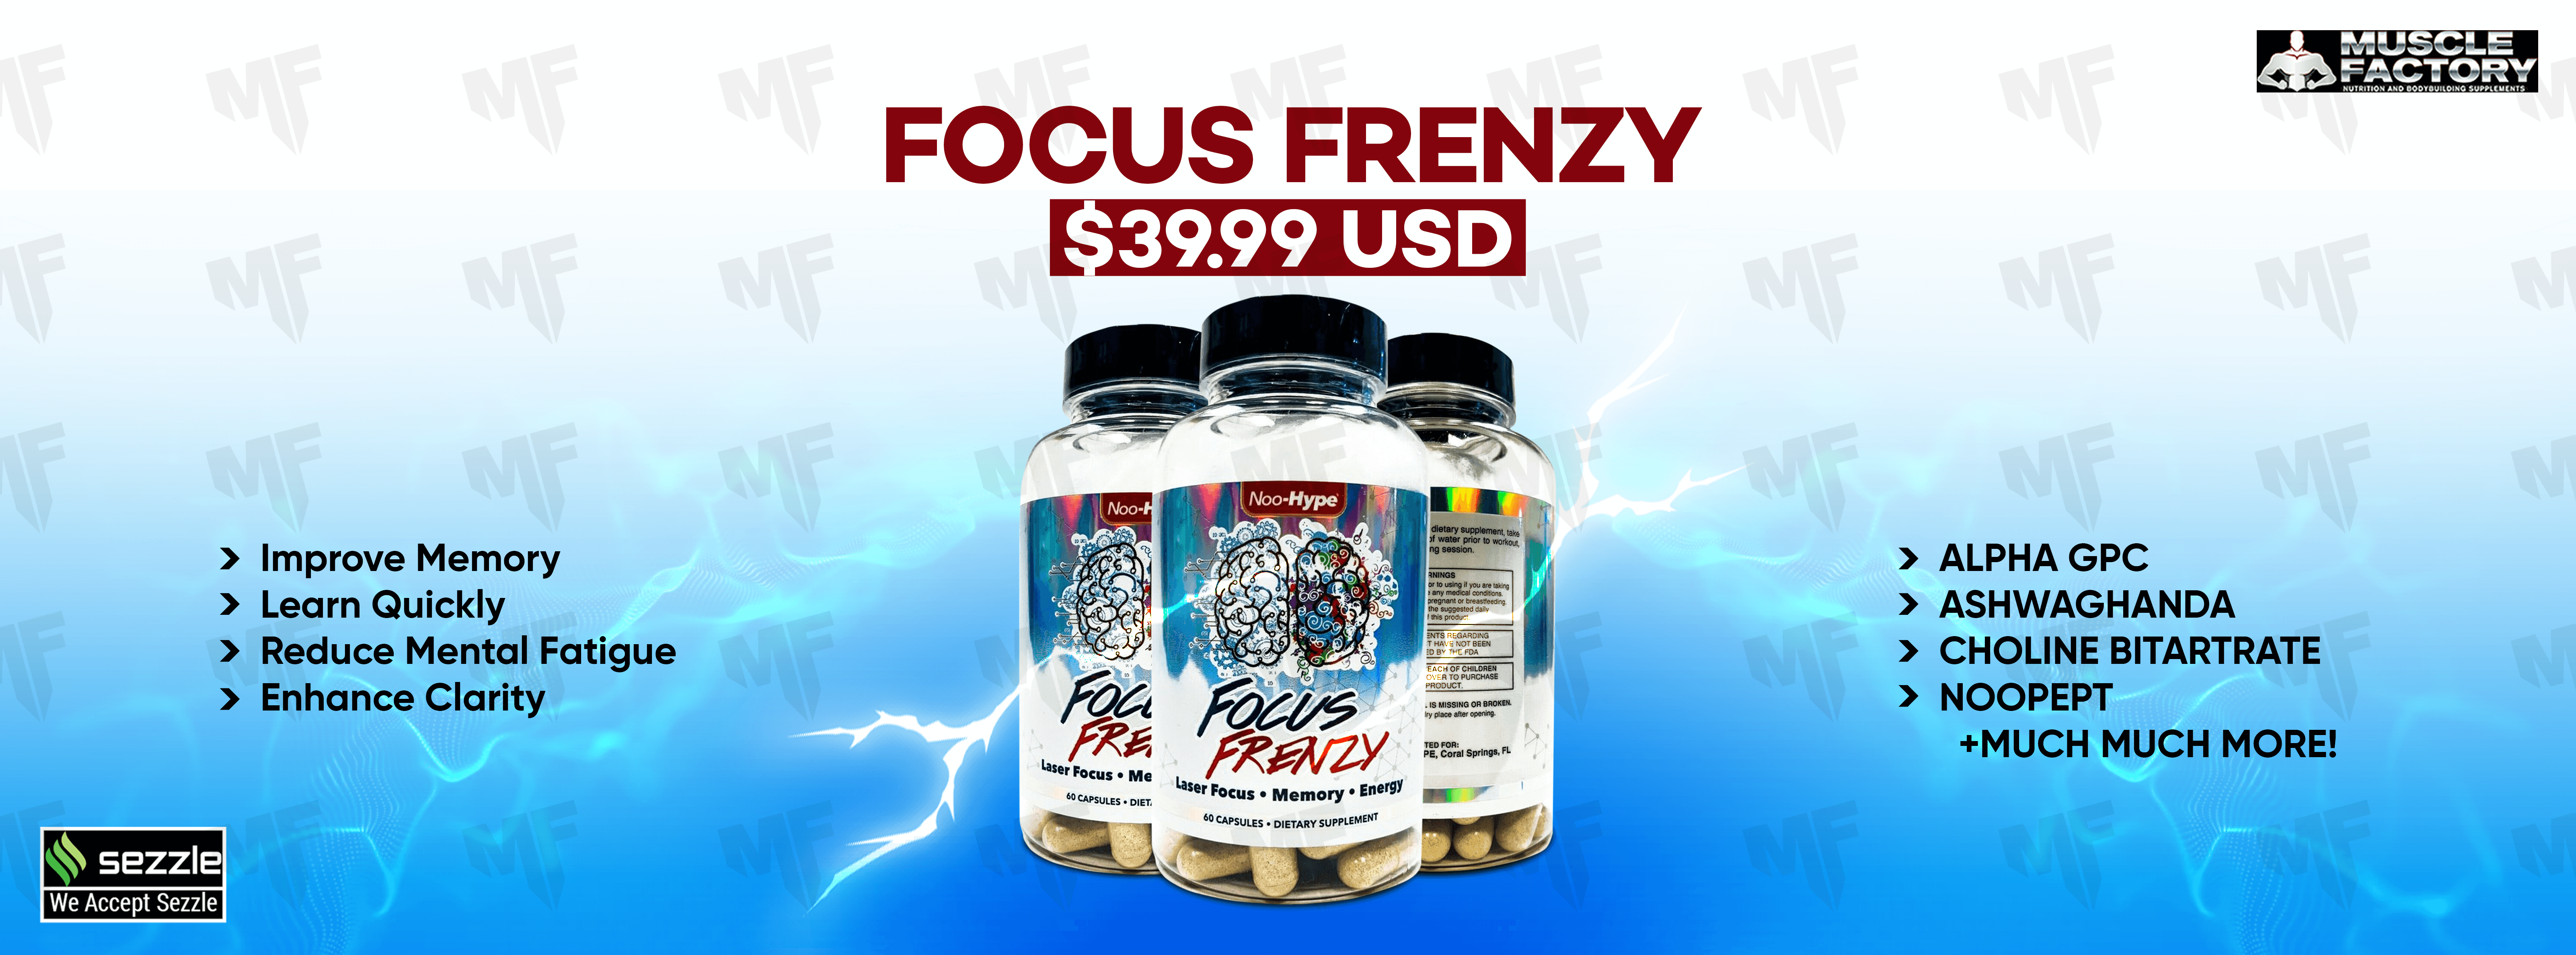 Focus Frenzy Banner Muscle Factory